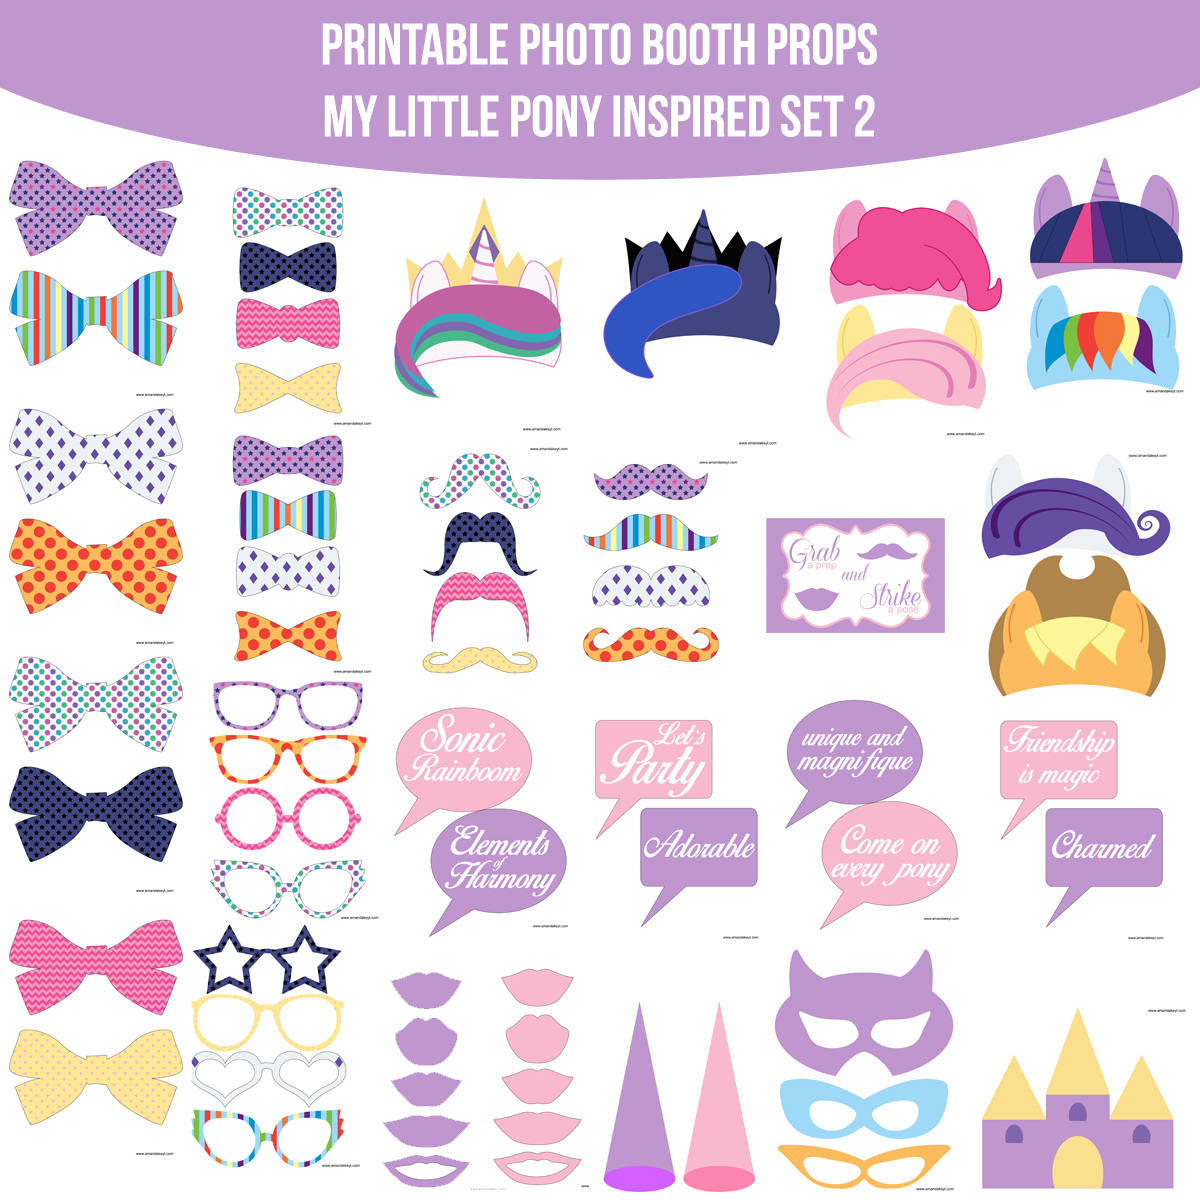 See the Set - To View The Whole Pony MLP My Little Pony Inspired Printable Photo Booth Prop Set 2 Click Here